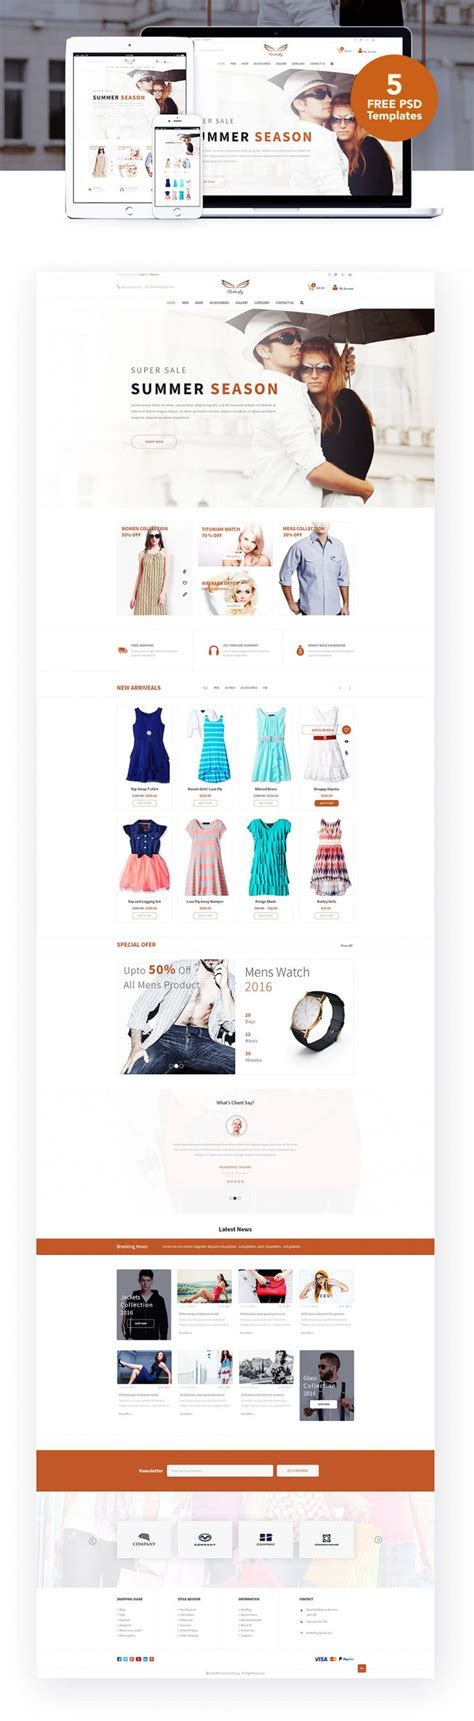 Fashion Ecommerce Website Templates Free Psd Download Download Psd Clothing Brand Website Template